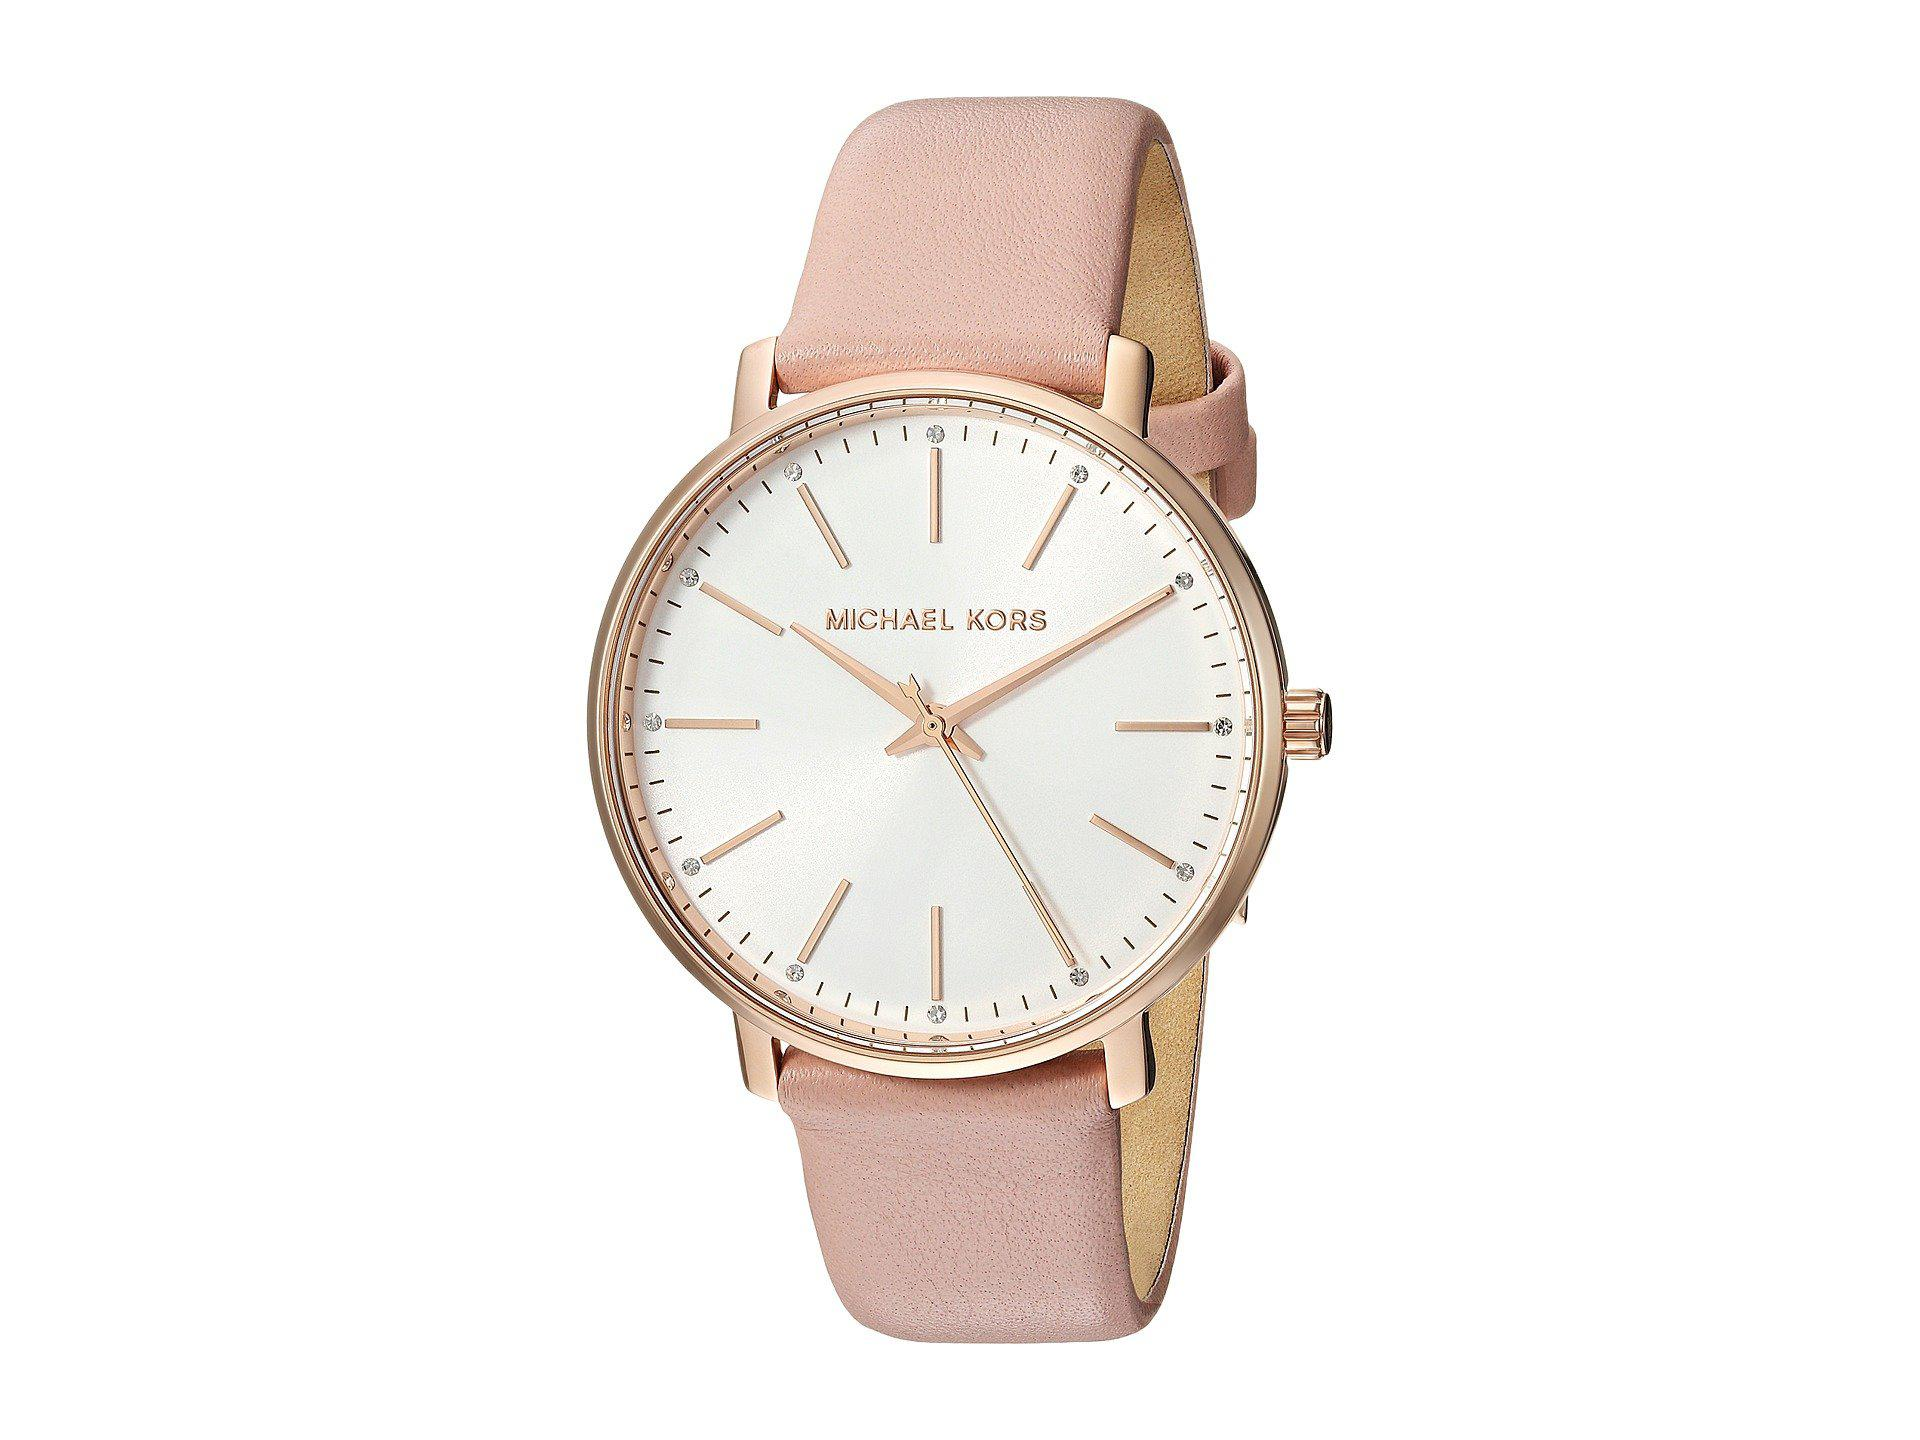 0b56ec73746c Lyst - Michael Kors Mk2741 - Pyper (pink) Watches in Pink